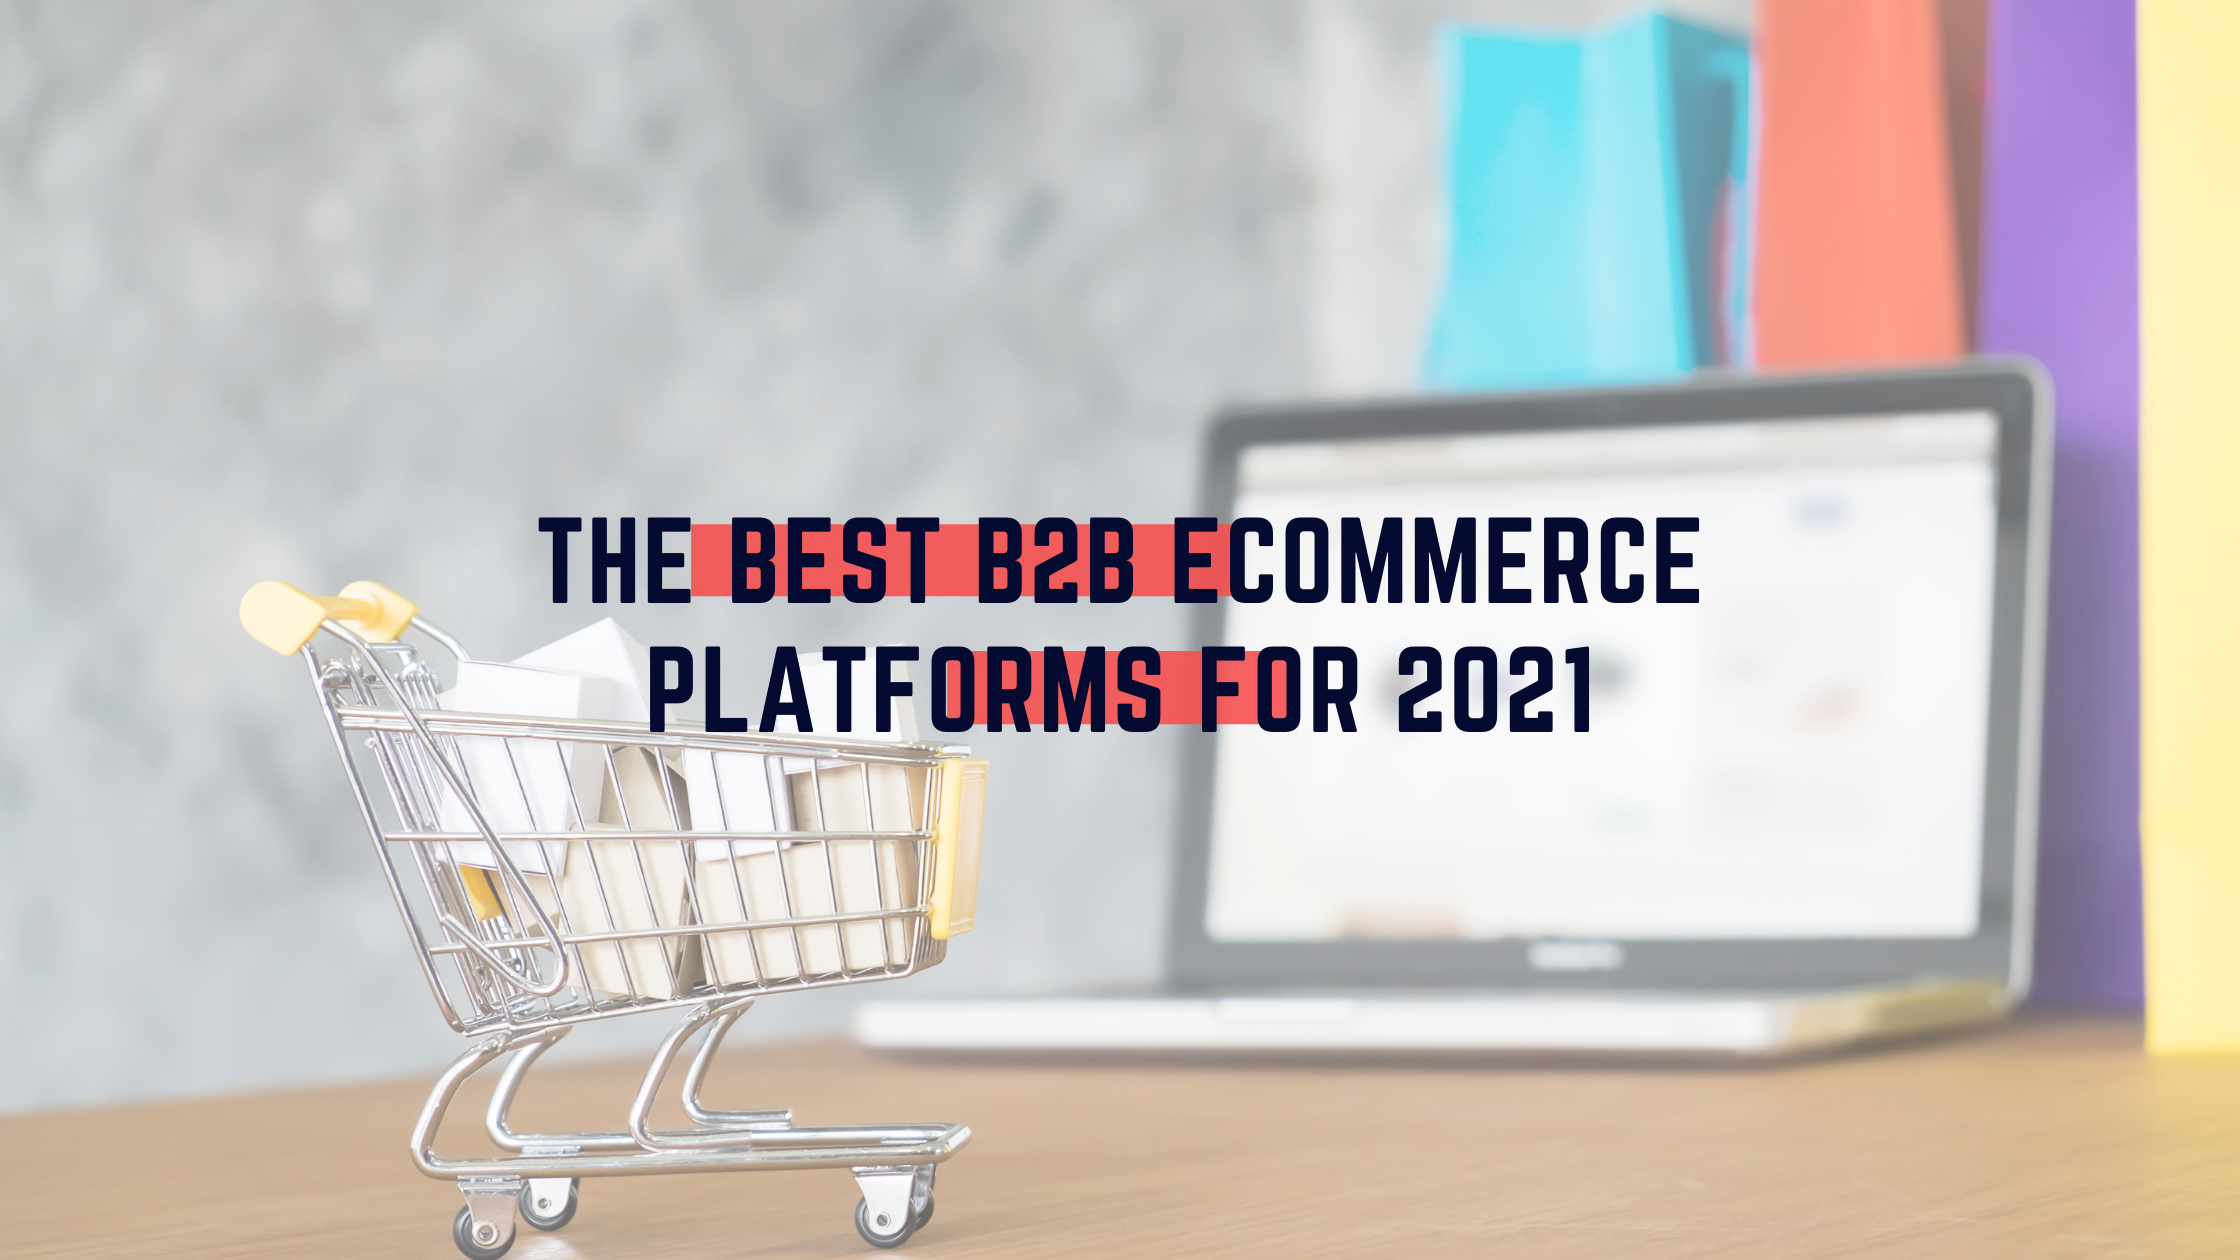 eCommerce Platforms for B2B in 2021